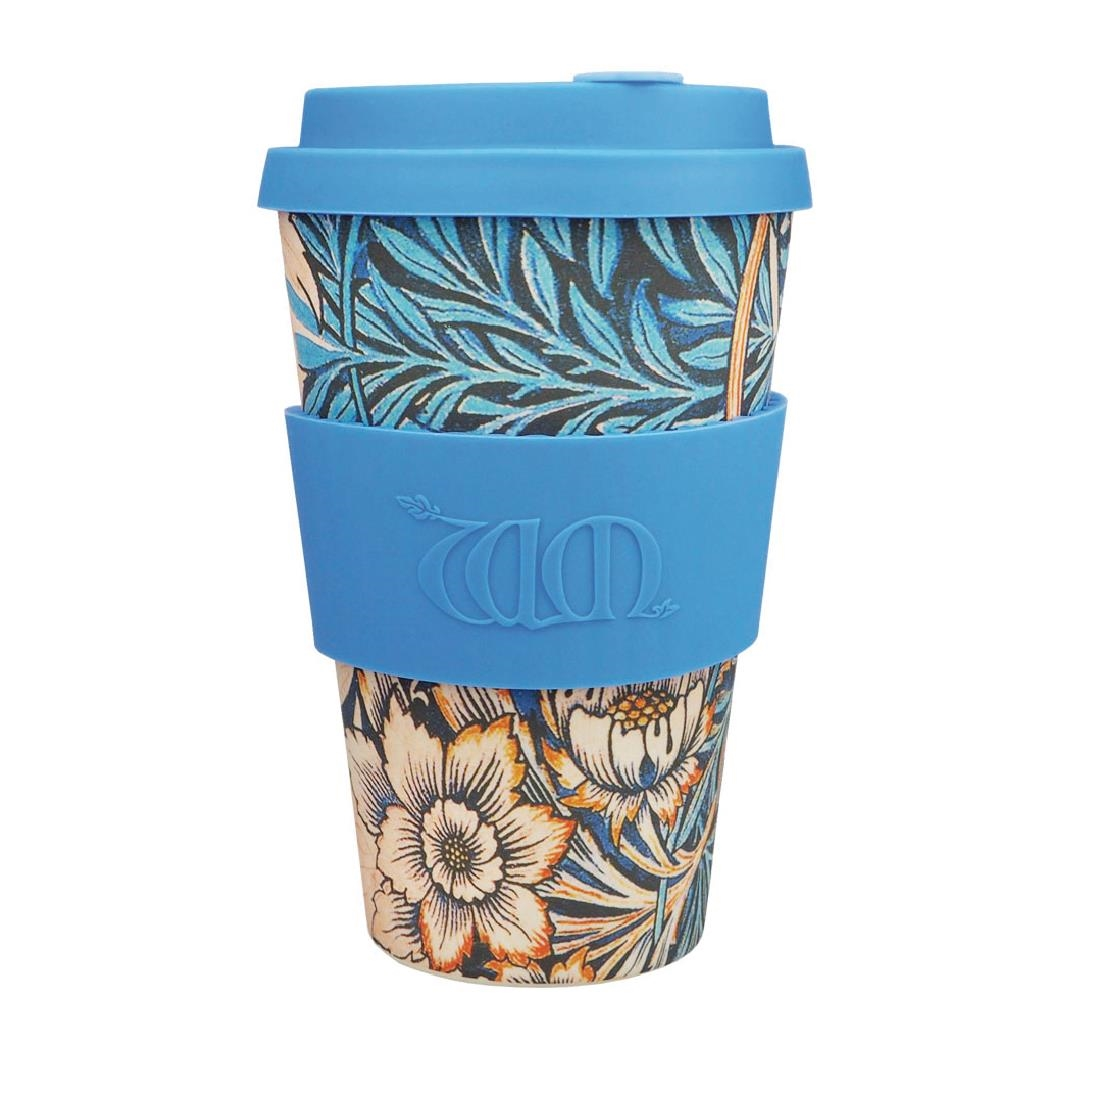 Image of Ecoffee Cup Bamboo Reusable Coffee Cup Lily William Morris 14oz